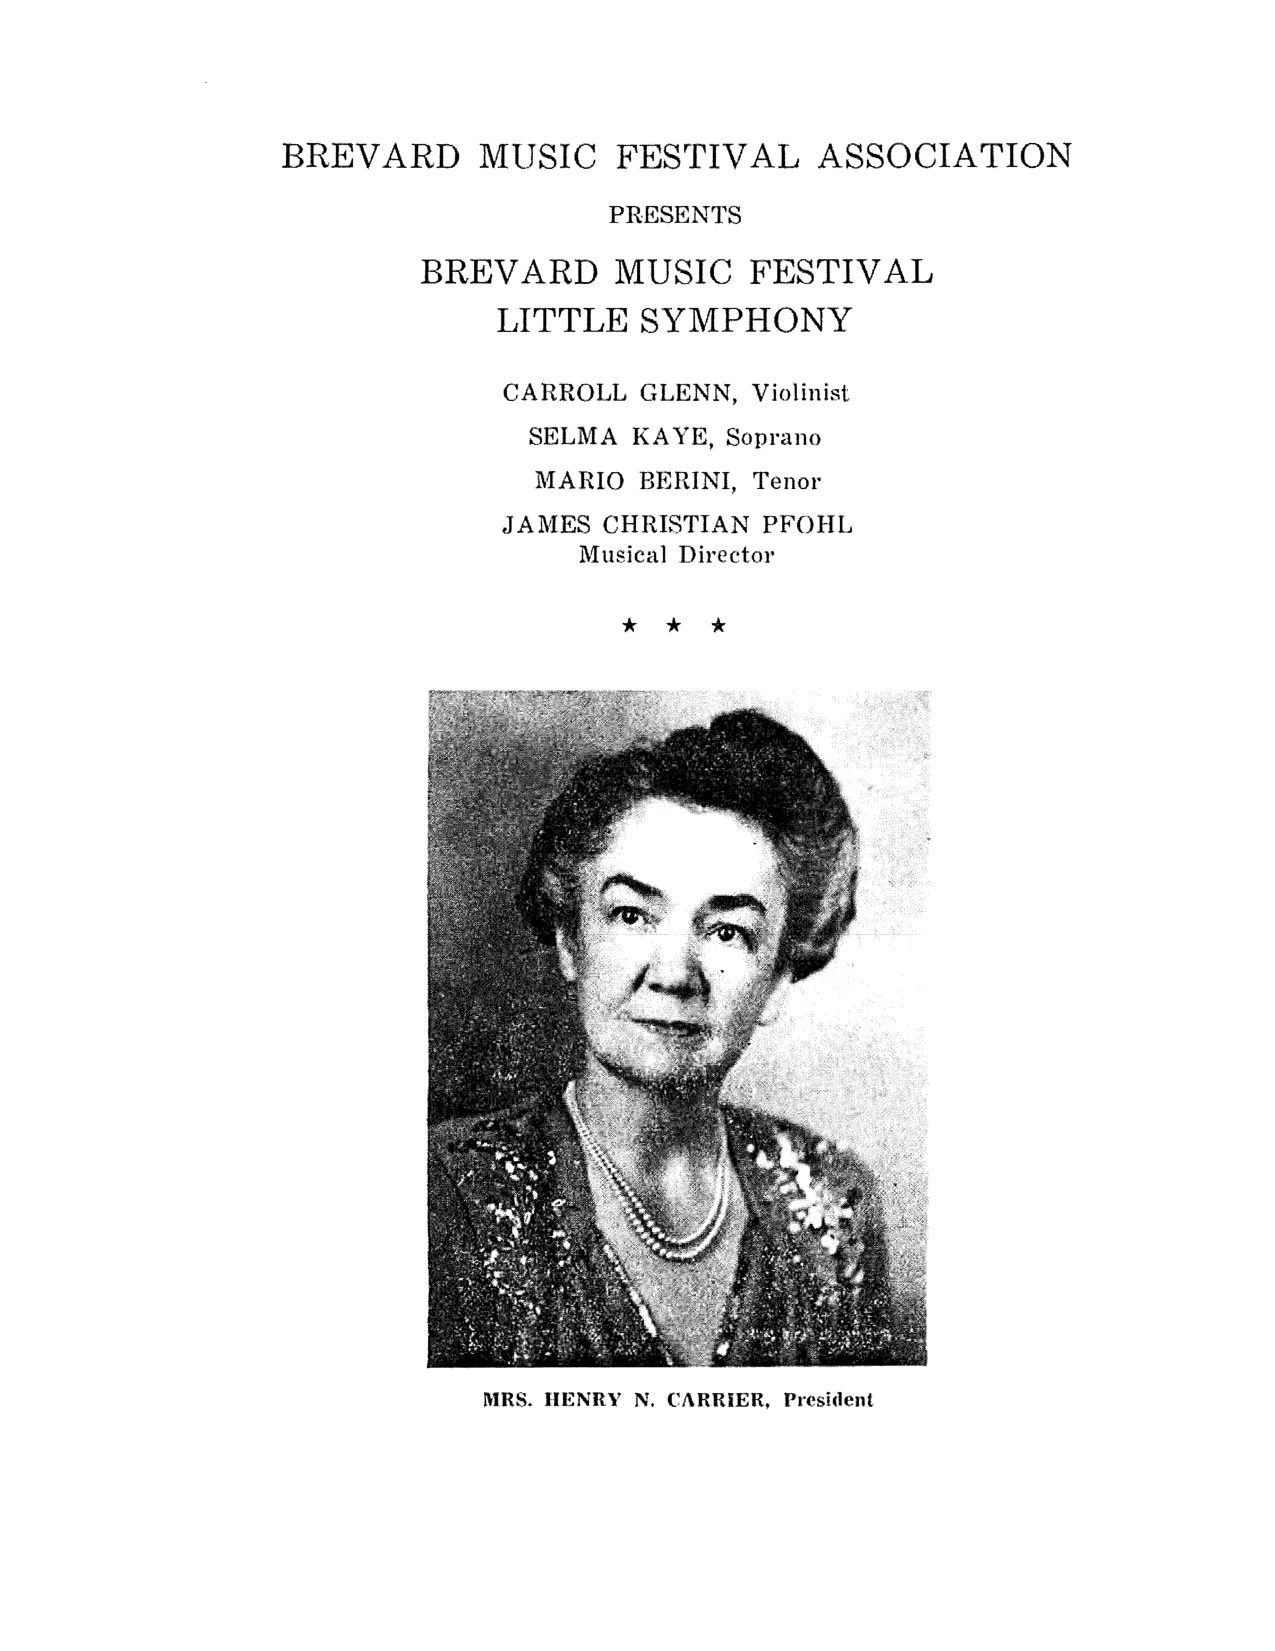 Nancy Carrier, Founder of Rockbrook was instrumental in the founding of The Brevard Music Center